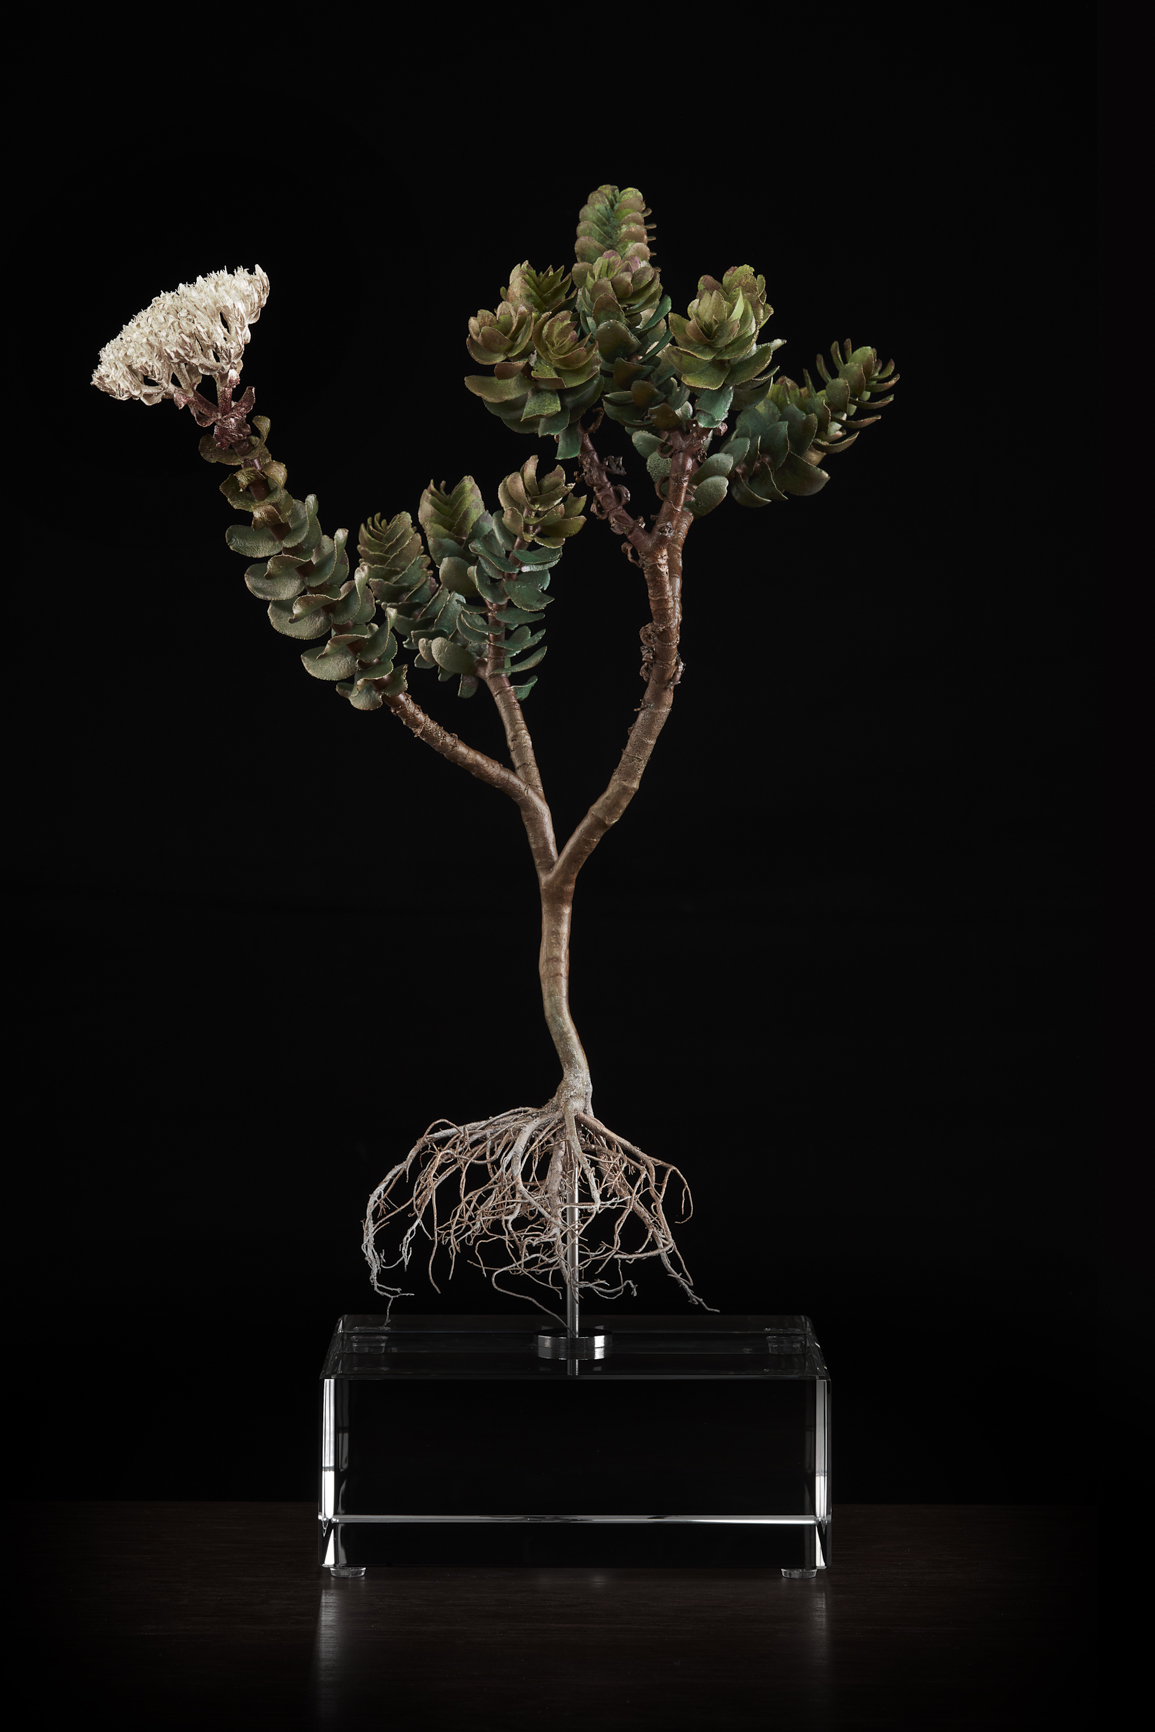 <i> Crassula dejecta </i>